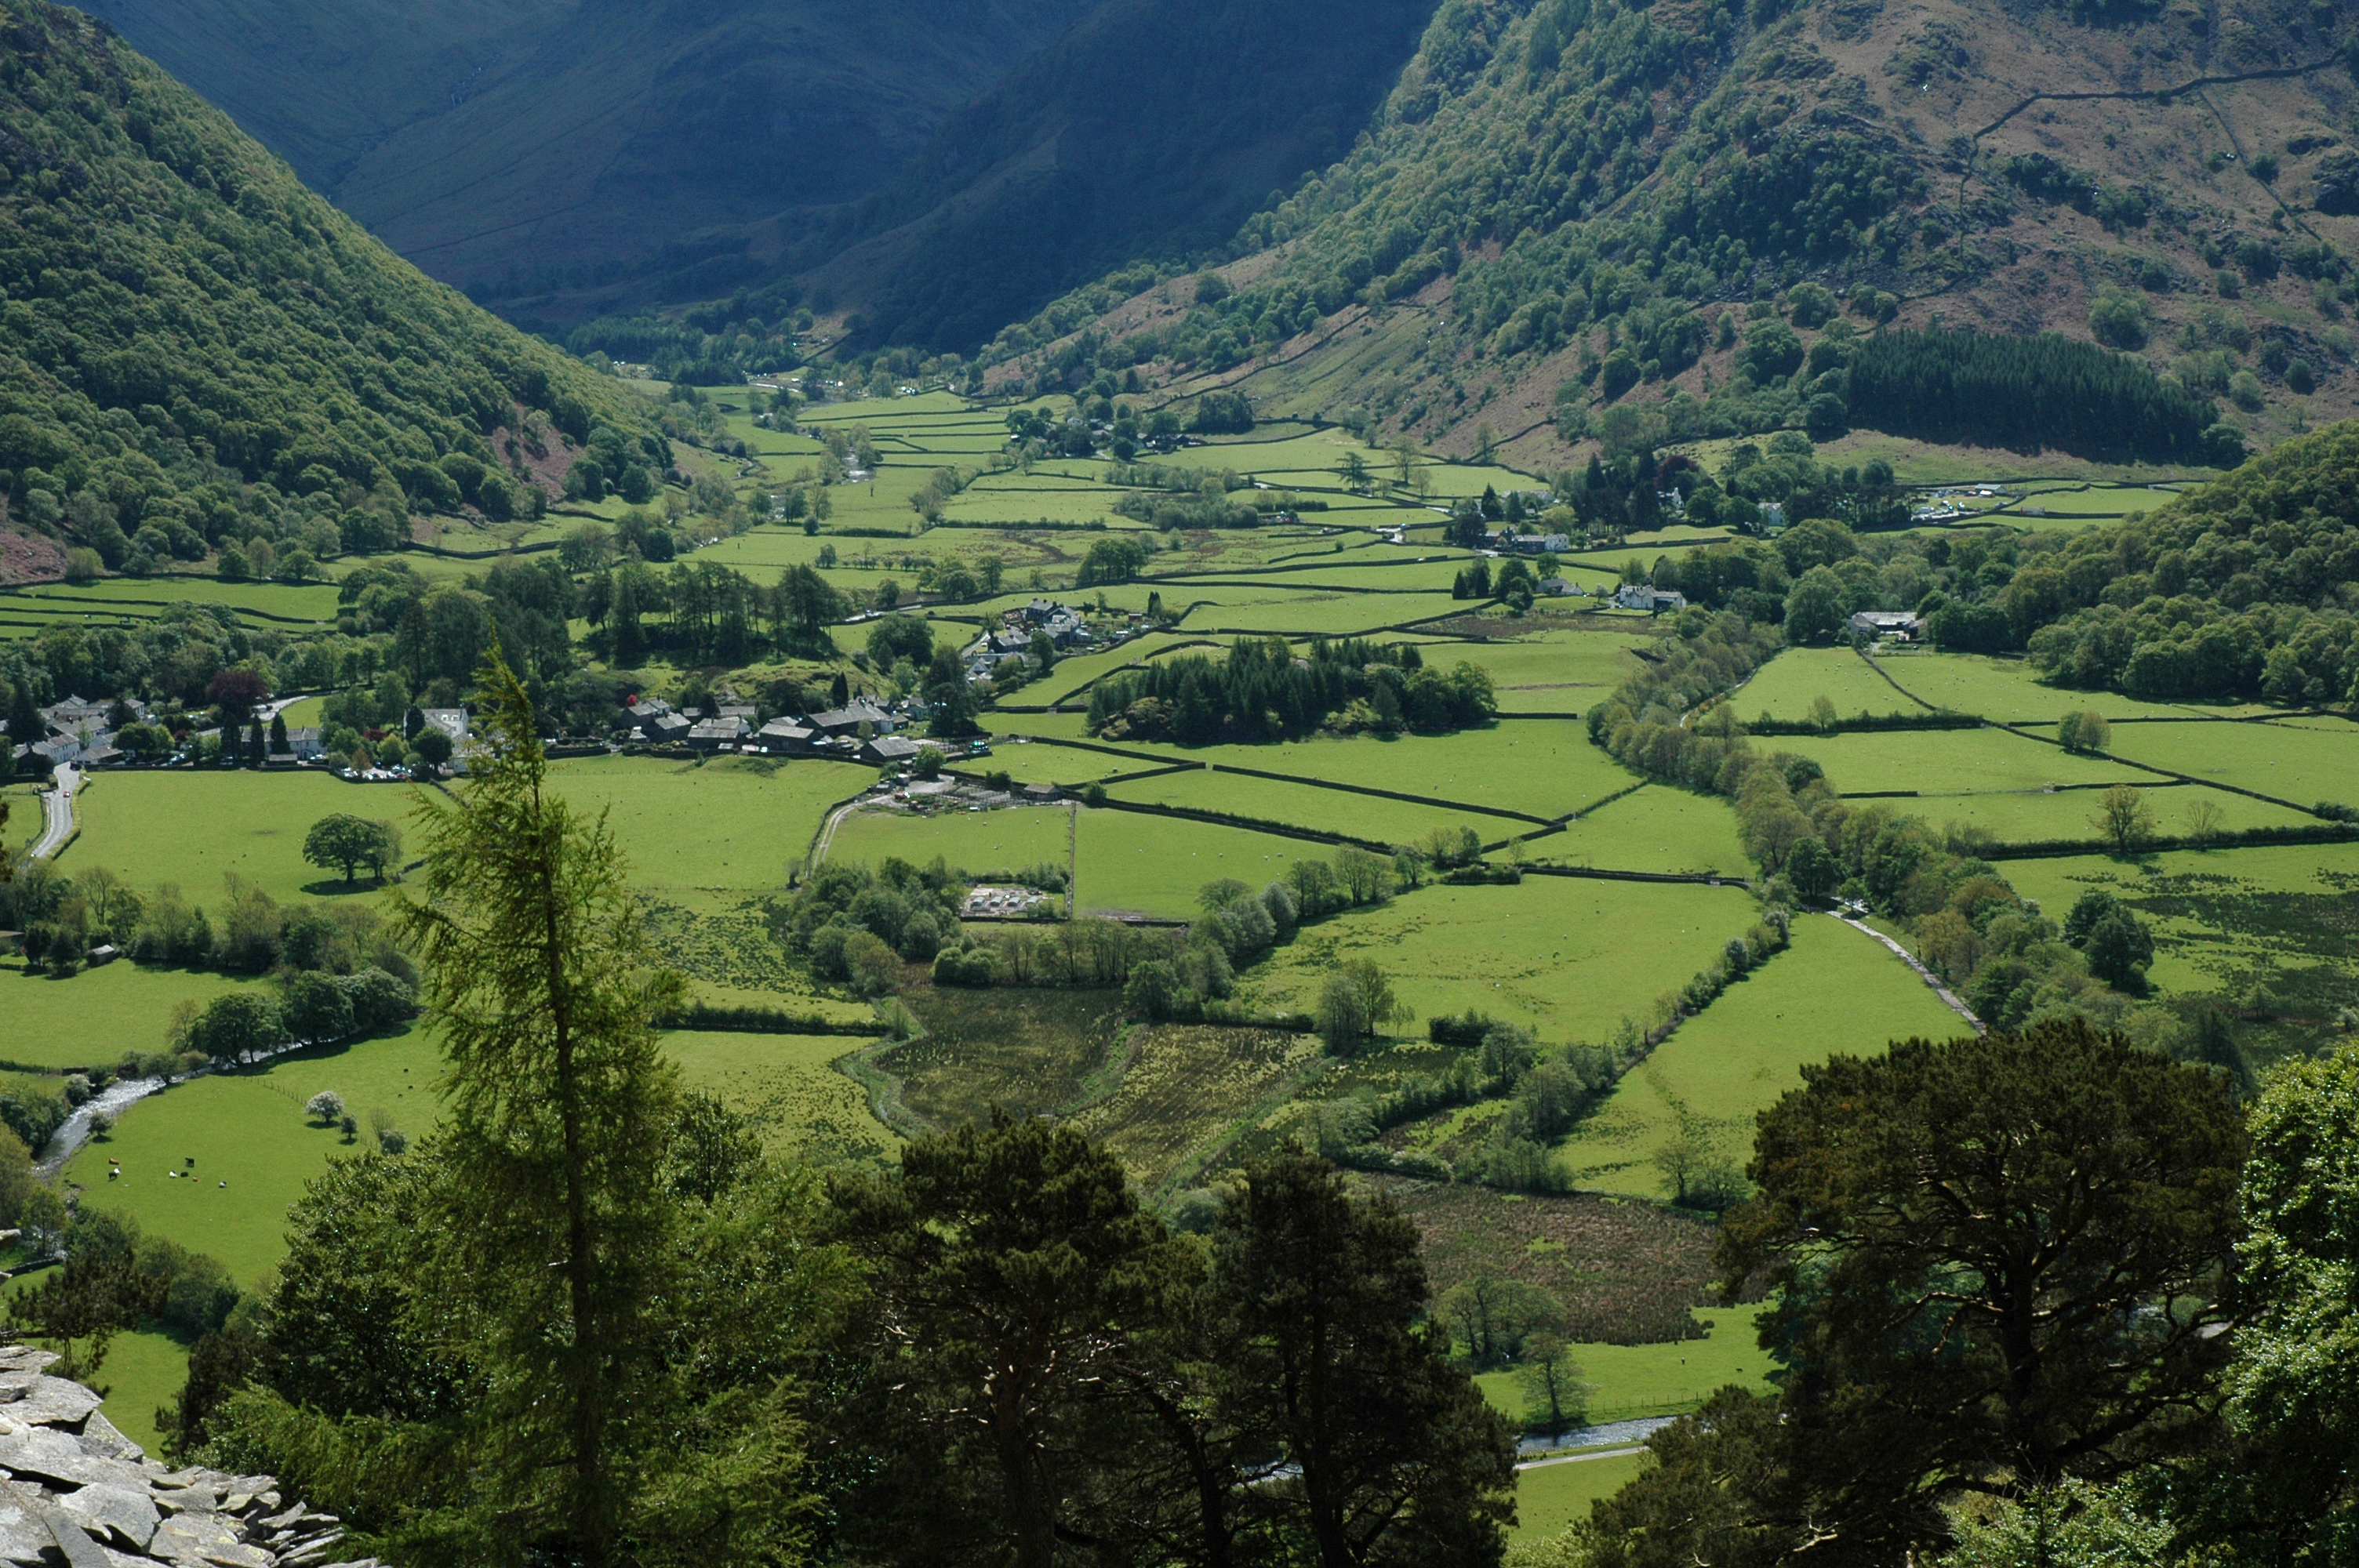 Borrowdale in the English Lake District © Andrew Sier. Image available under licence to NERC – Centre for Ecology & Hydrology